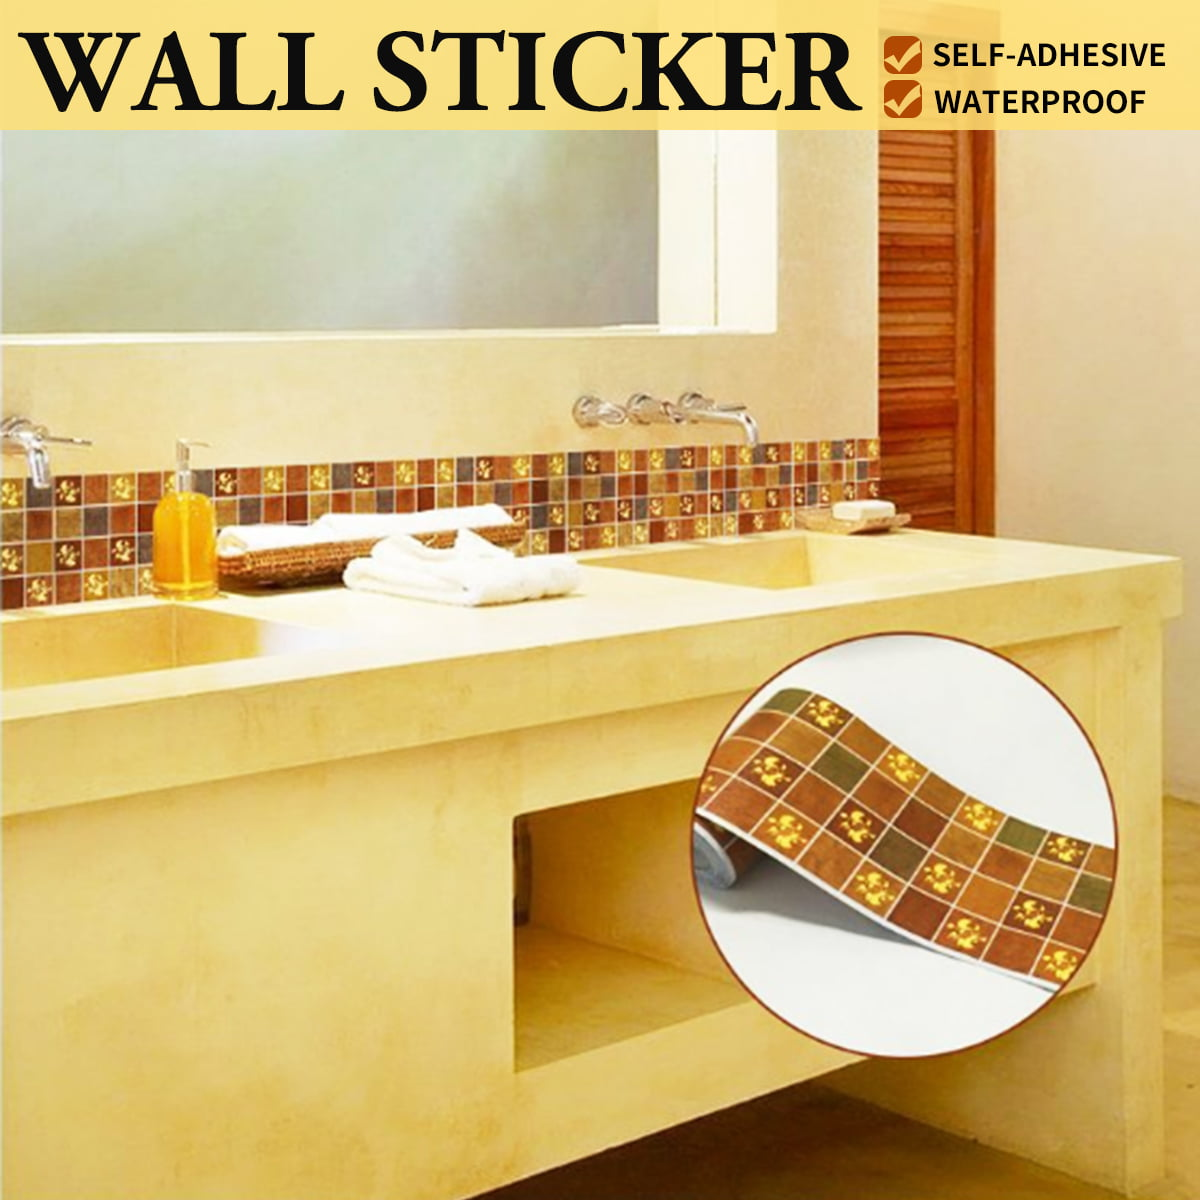 Peel And Stick Wallpaper In Bathroom: 3D Self Adhesive Waterproof Wallpaper Border Peel And